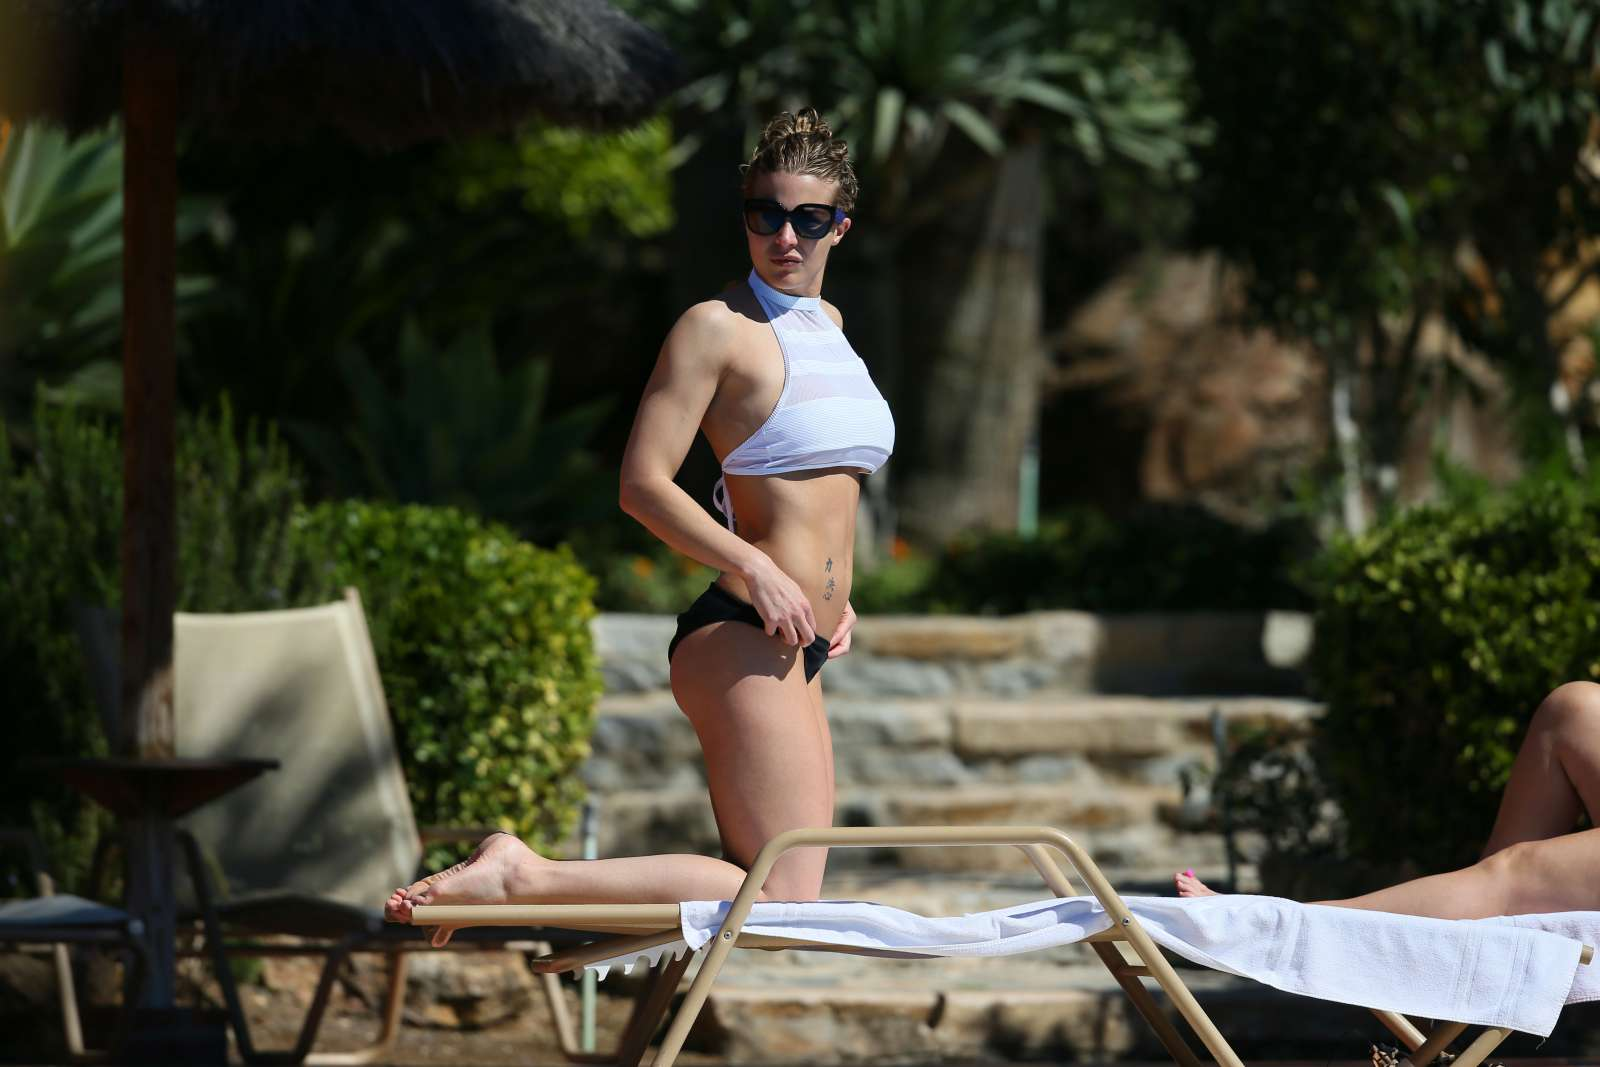 gemma atkinson image 40 - photo #30